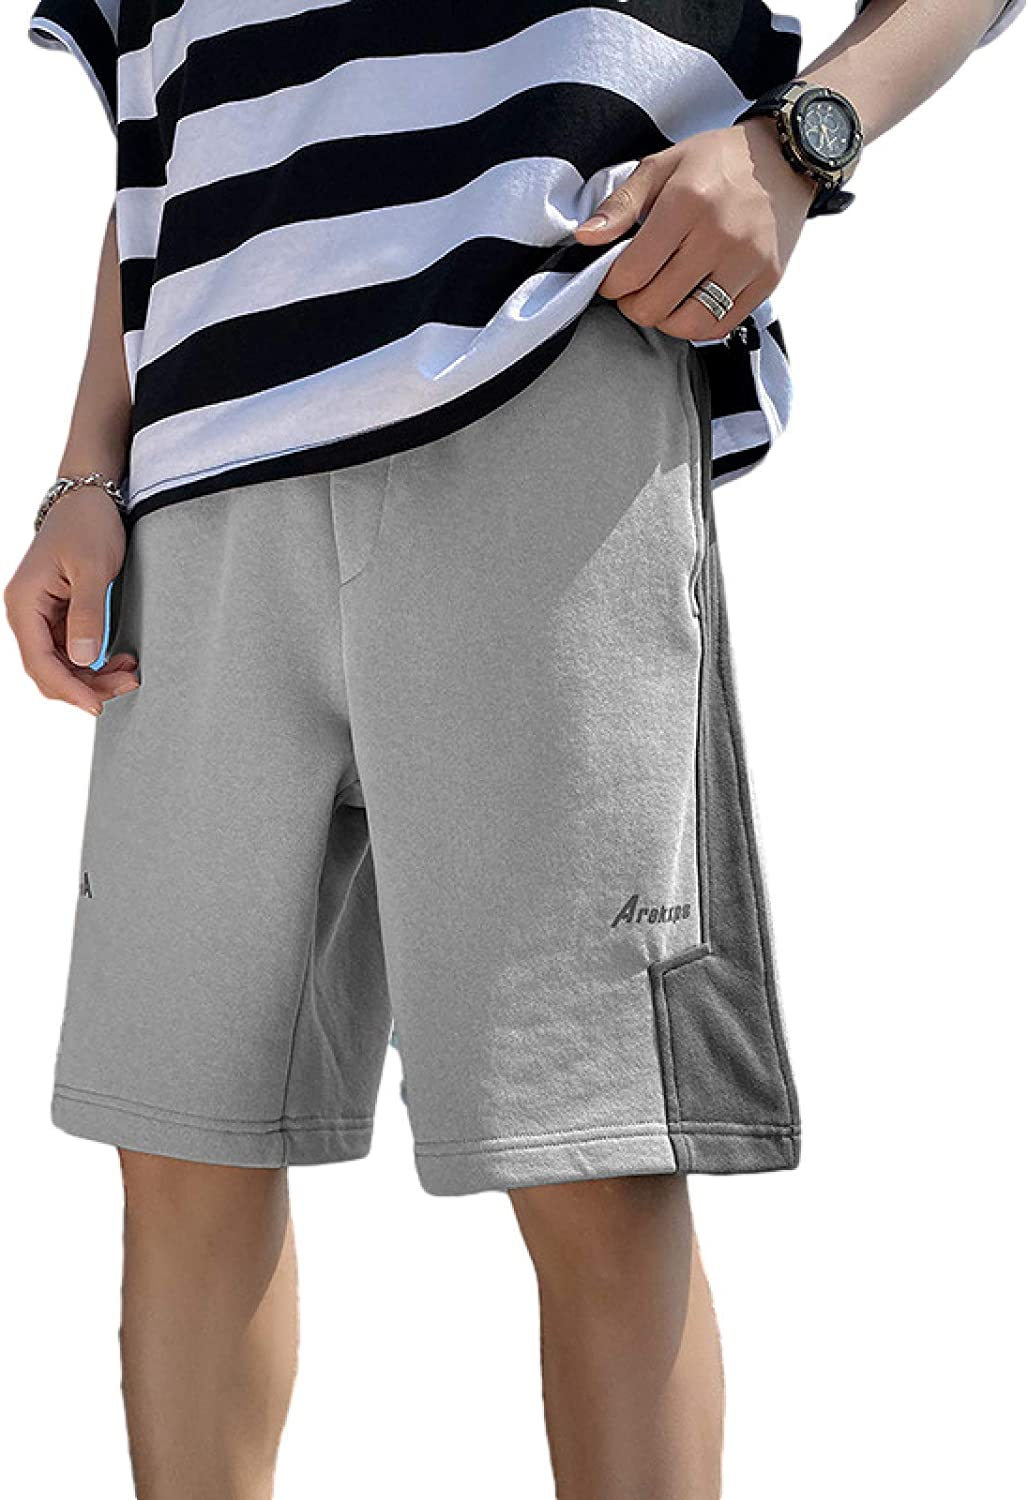 Wantess Men's Casual Shorts Fashion Color Contrast Stitching Trend Comfortable and